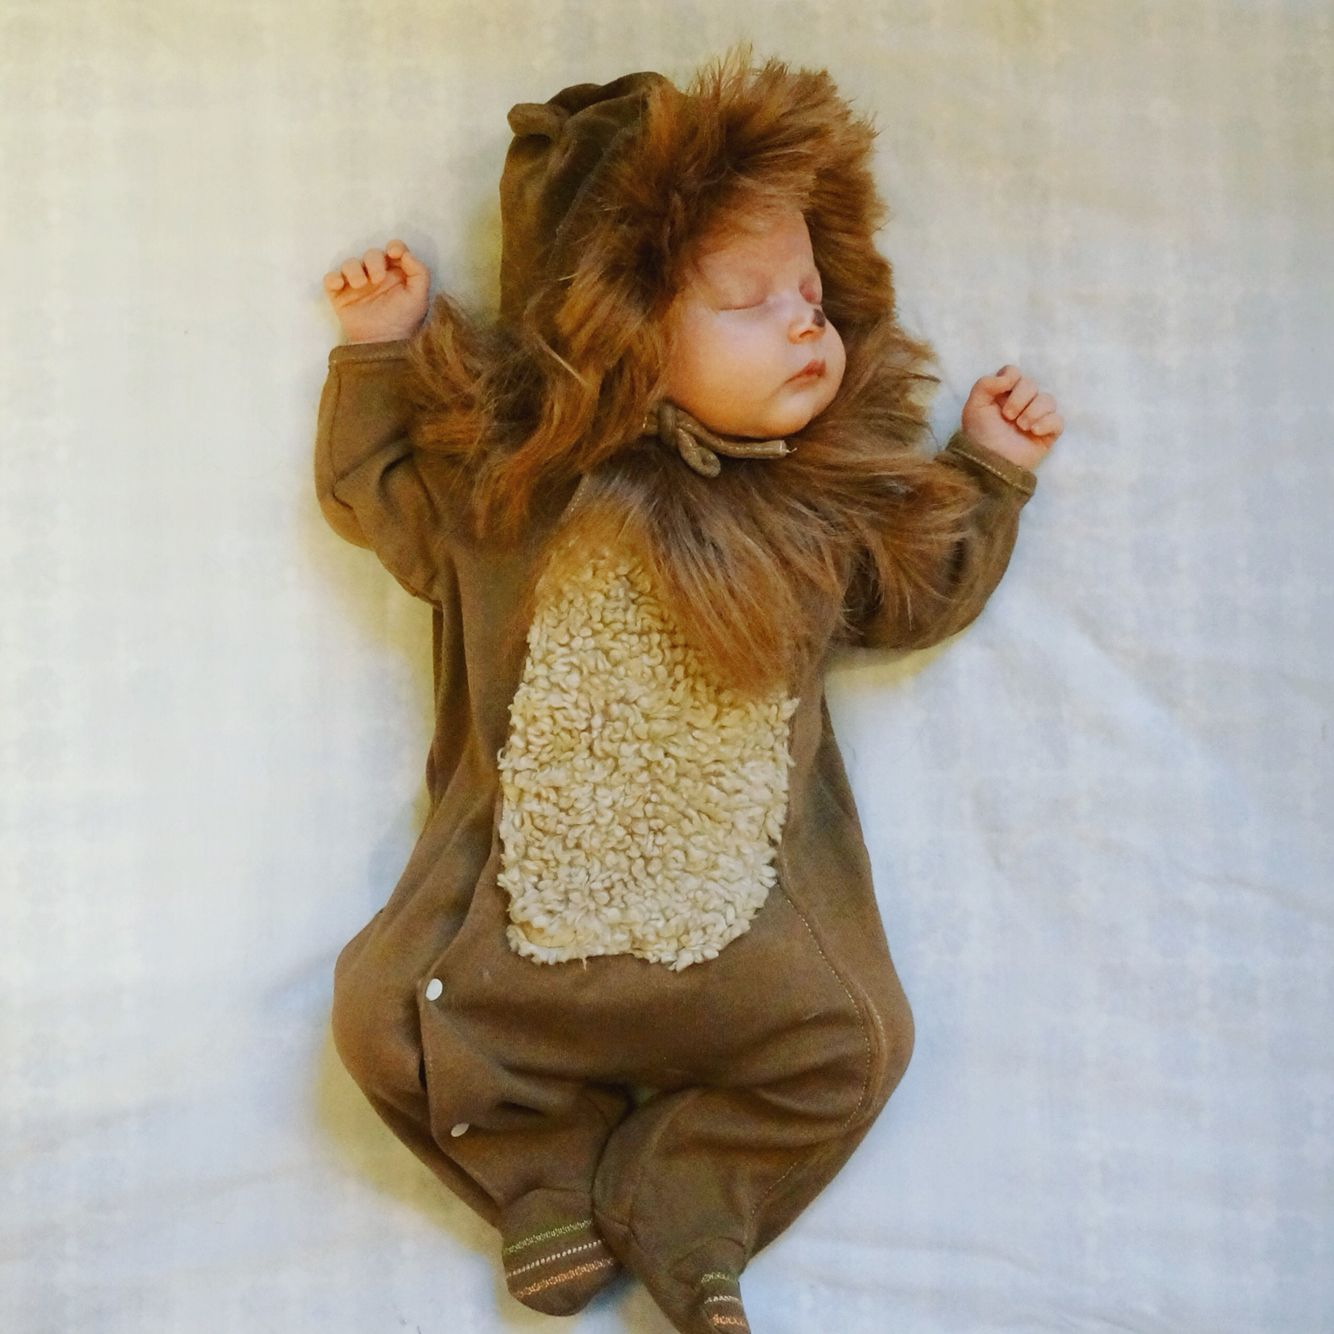 DIY Newborn baby Halloween costume Wizard of Oz lion costume. & DIY Newborn baby Halloween costume Wizard of Oz lion costume ...